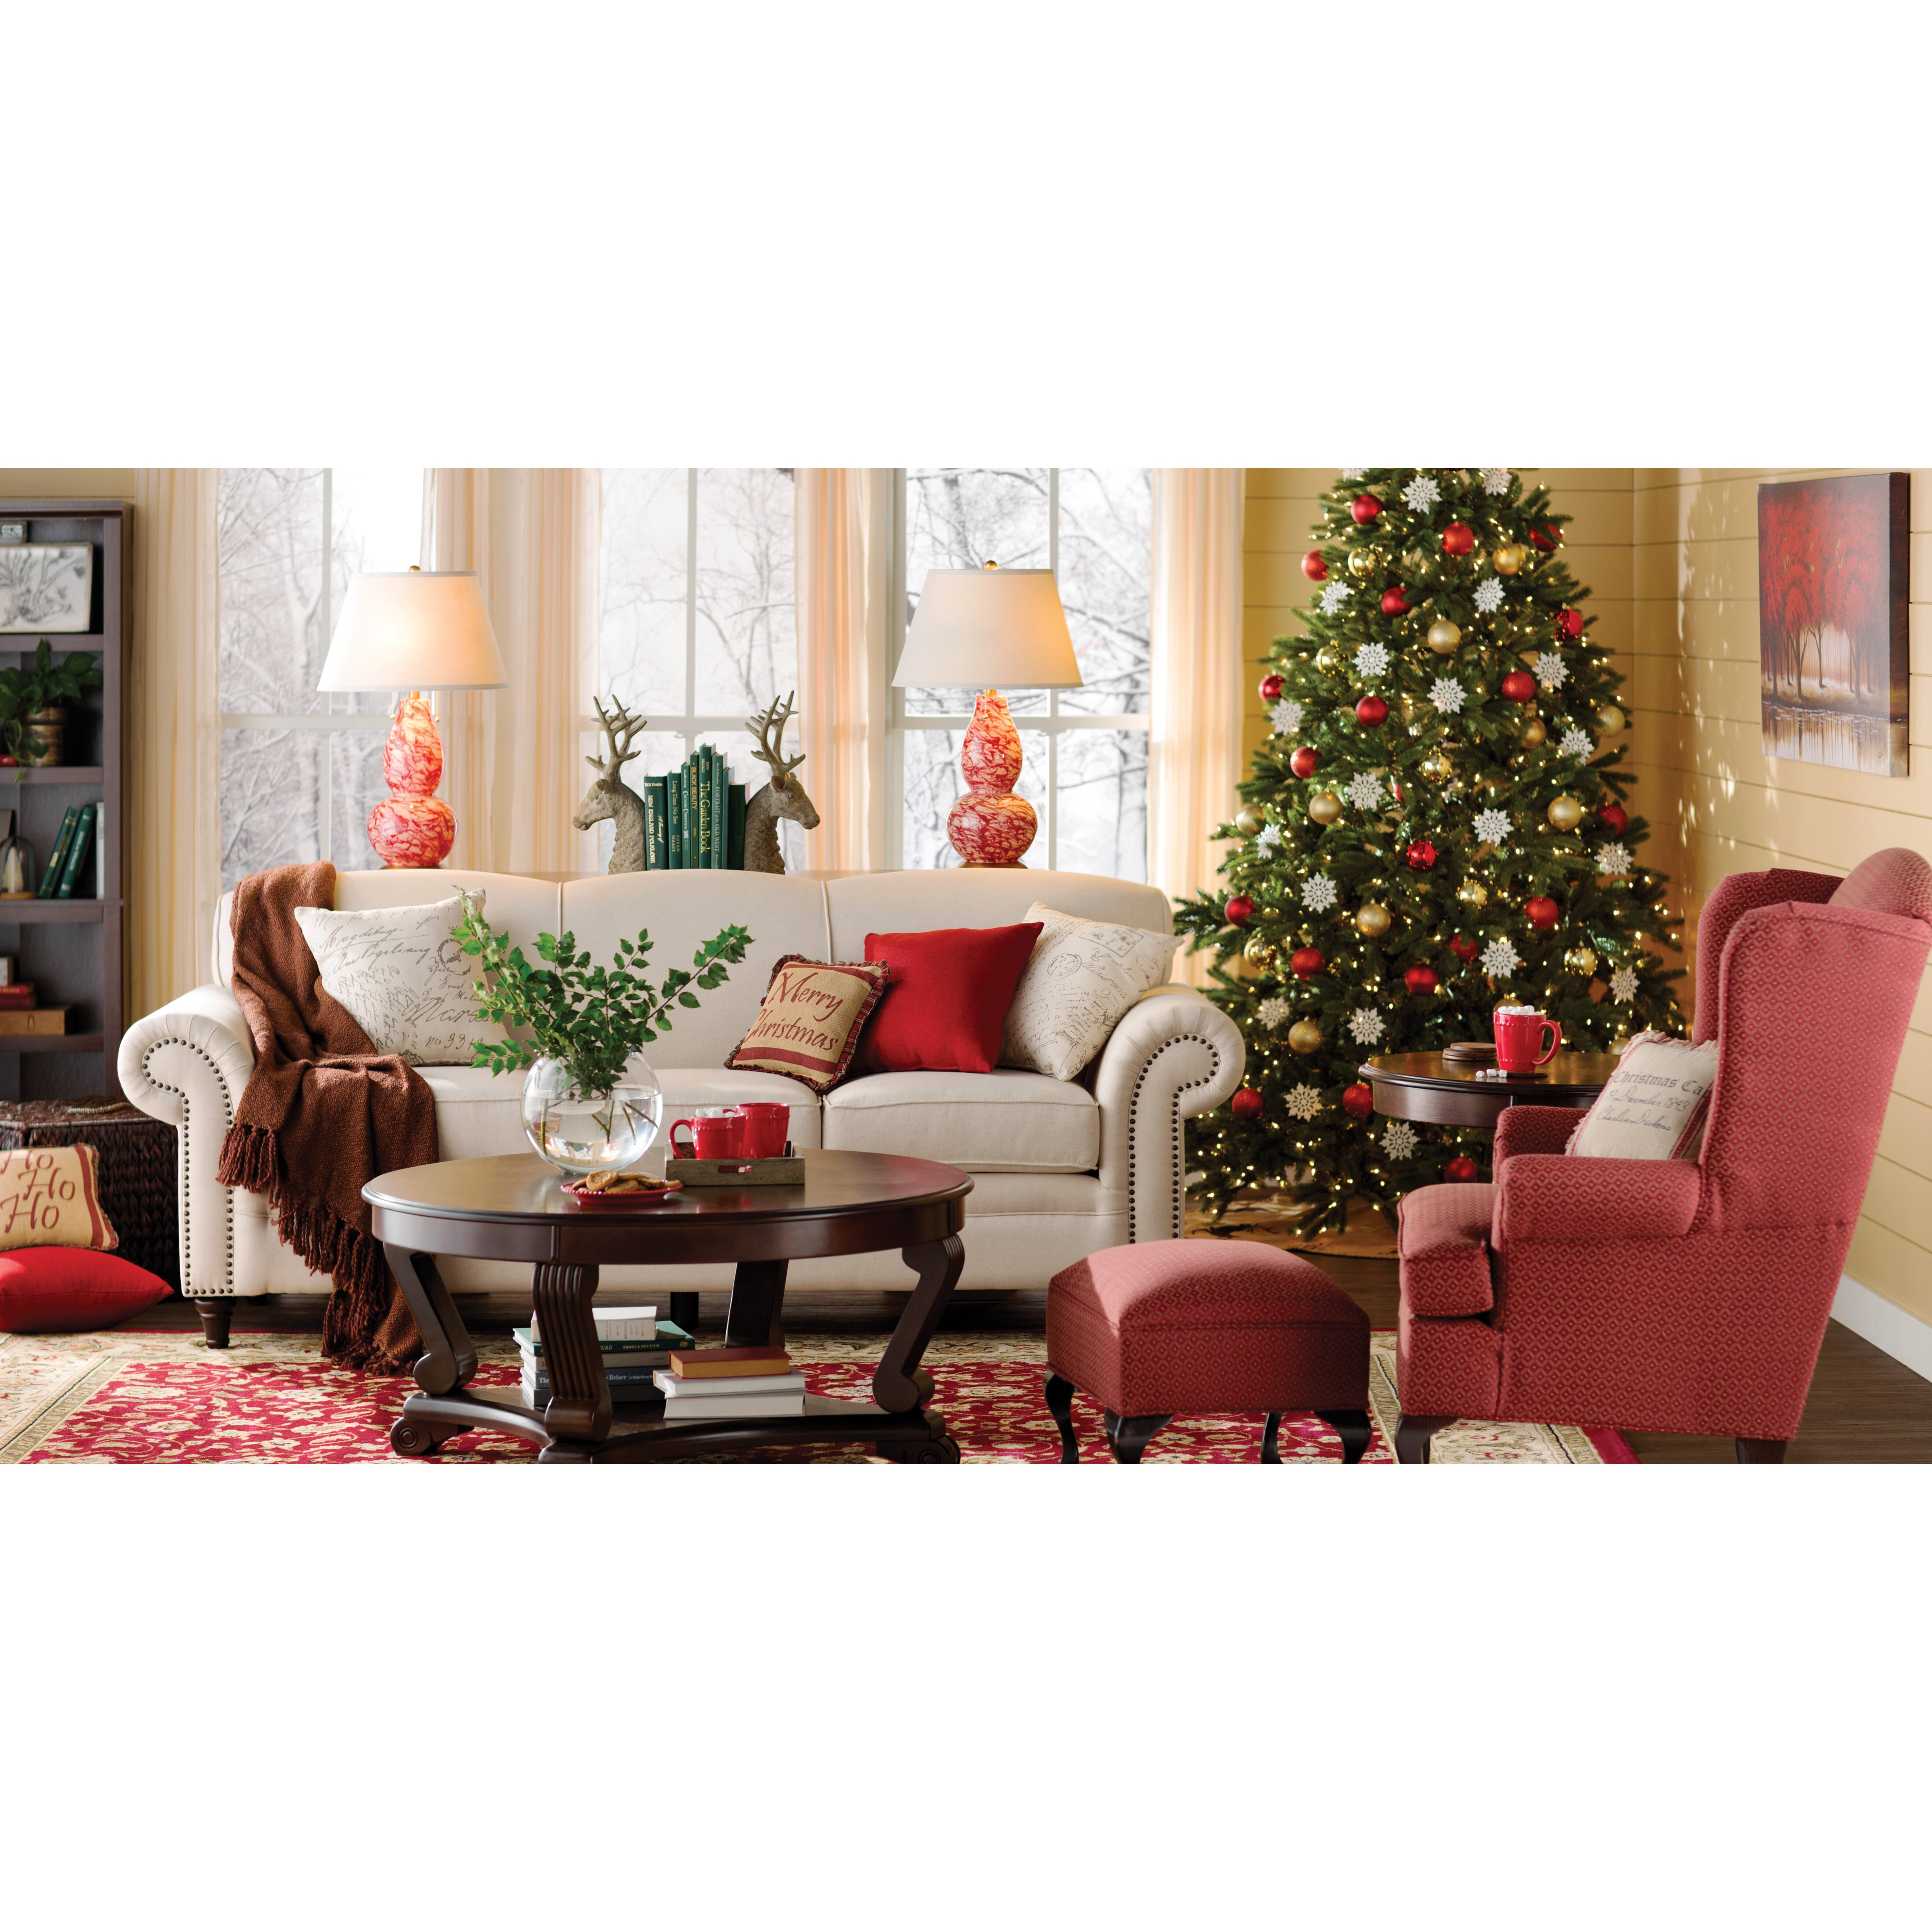 The Holiday Aisle 7.5' Green Artificial Christmas Tree Stand ...